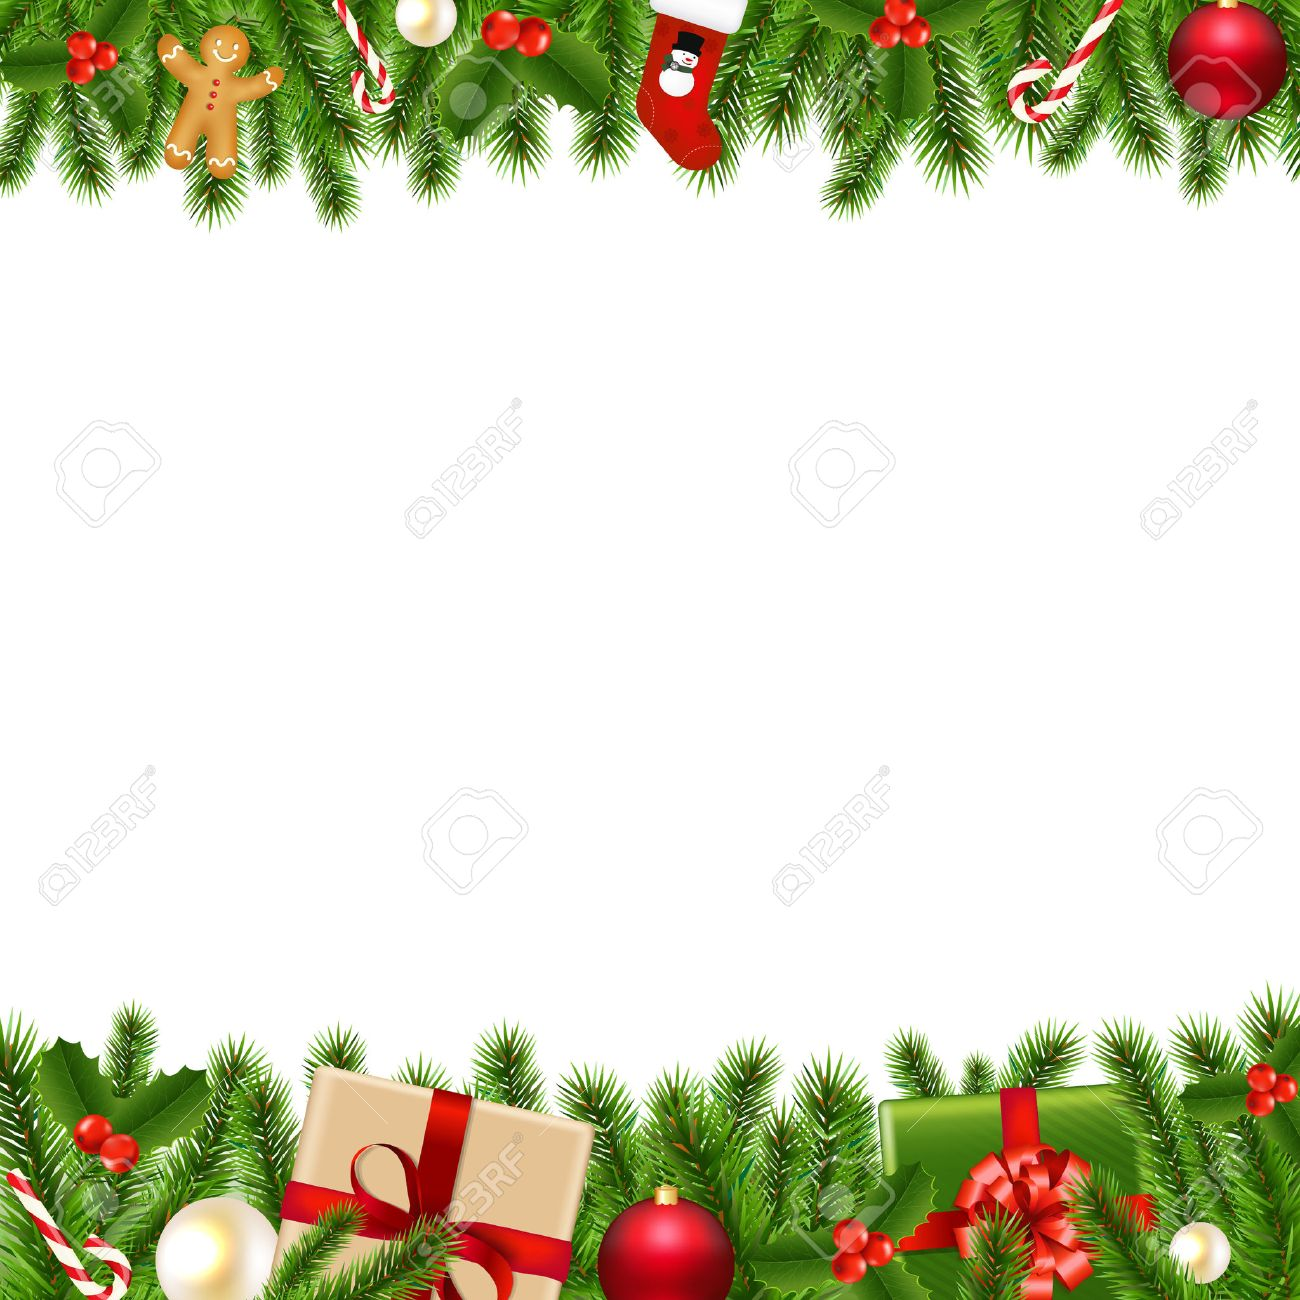 Merry Christmas Borders With Gradient Mesh, Vector Illustration.